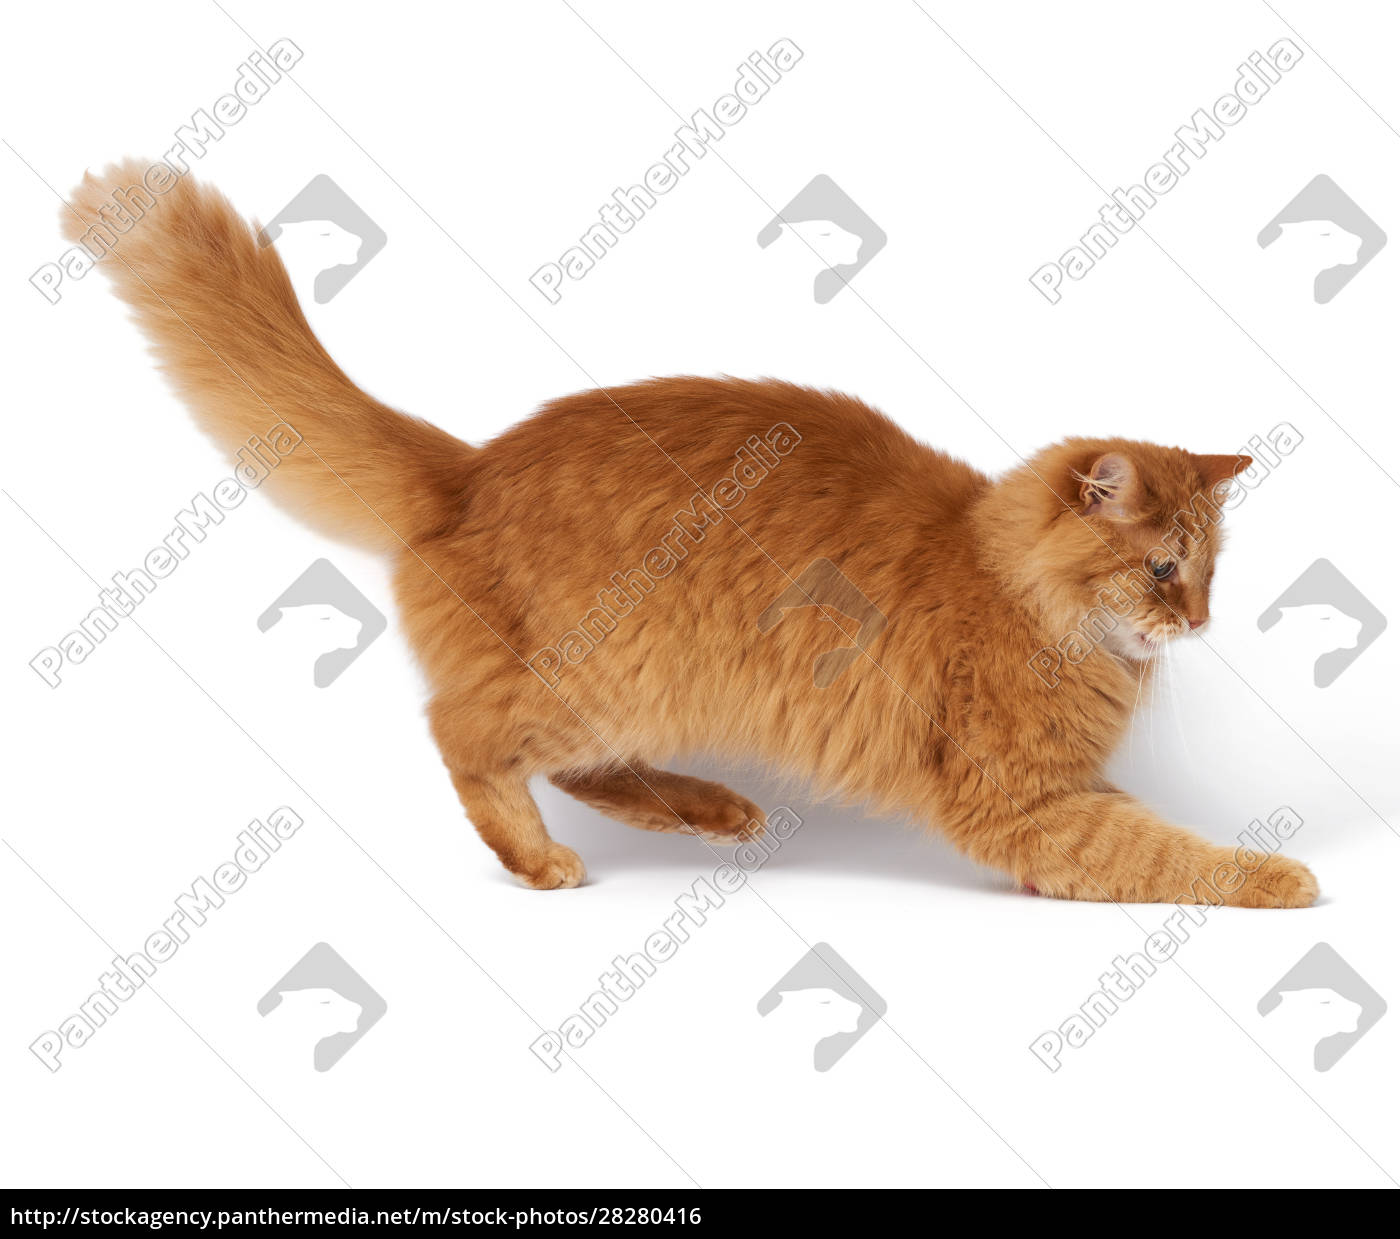 big, adult, fluffy, red, cat, in - 28280416